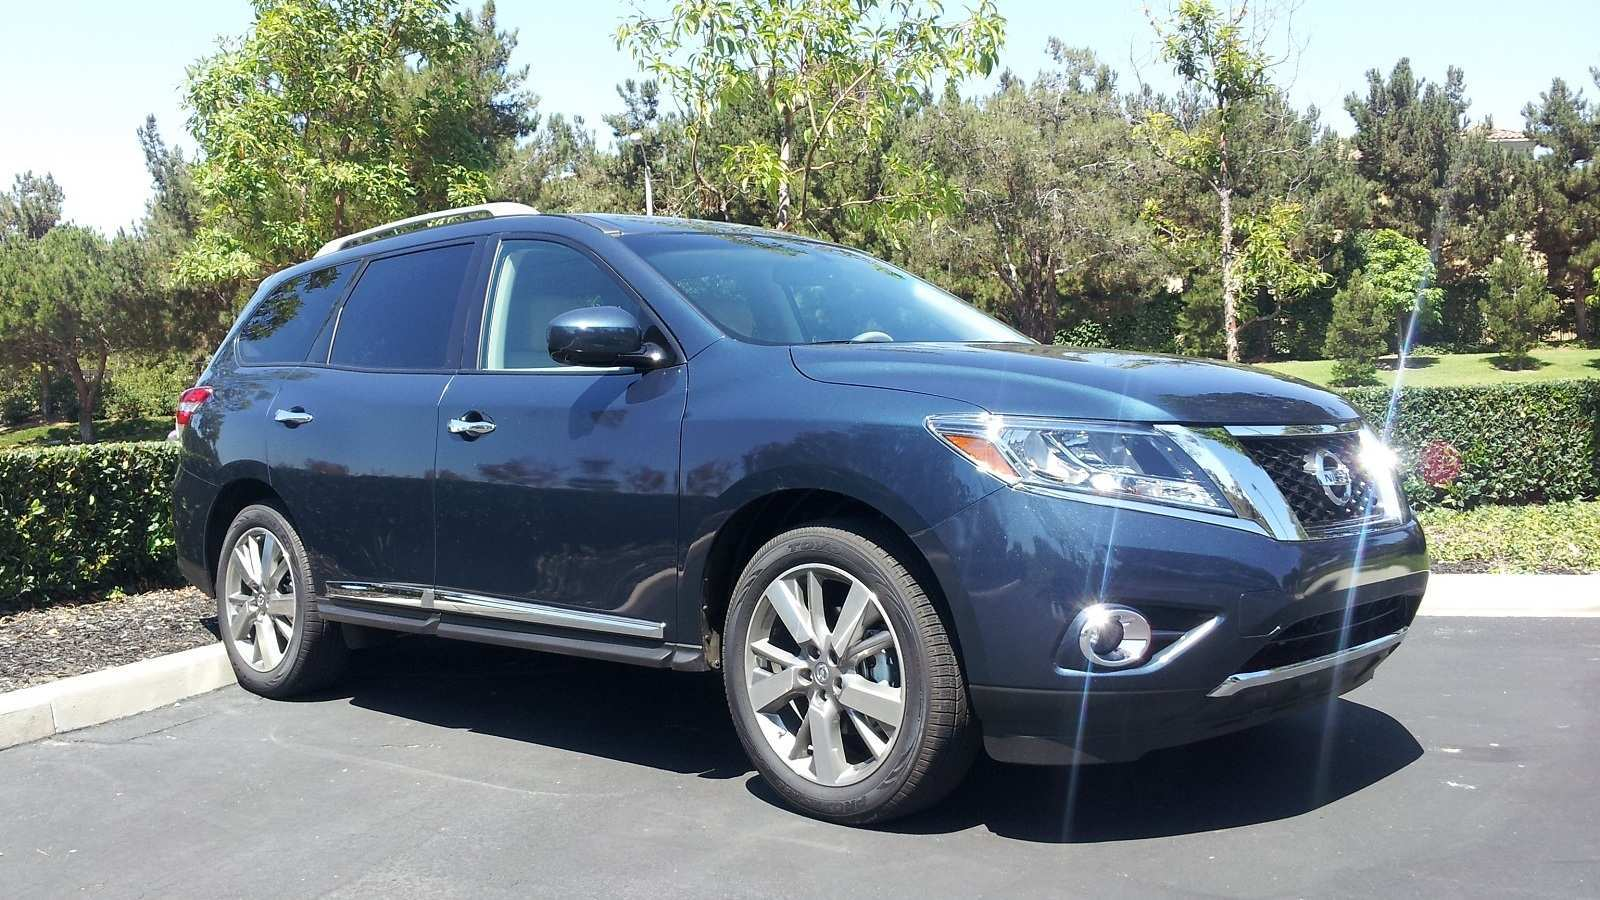 74 All New 2020 Nissan Pathfinder Hybrid Price And Review